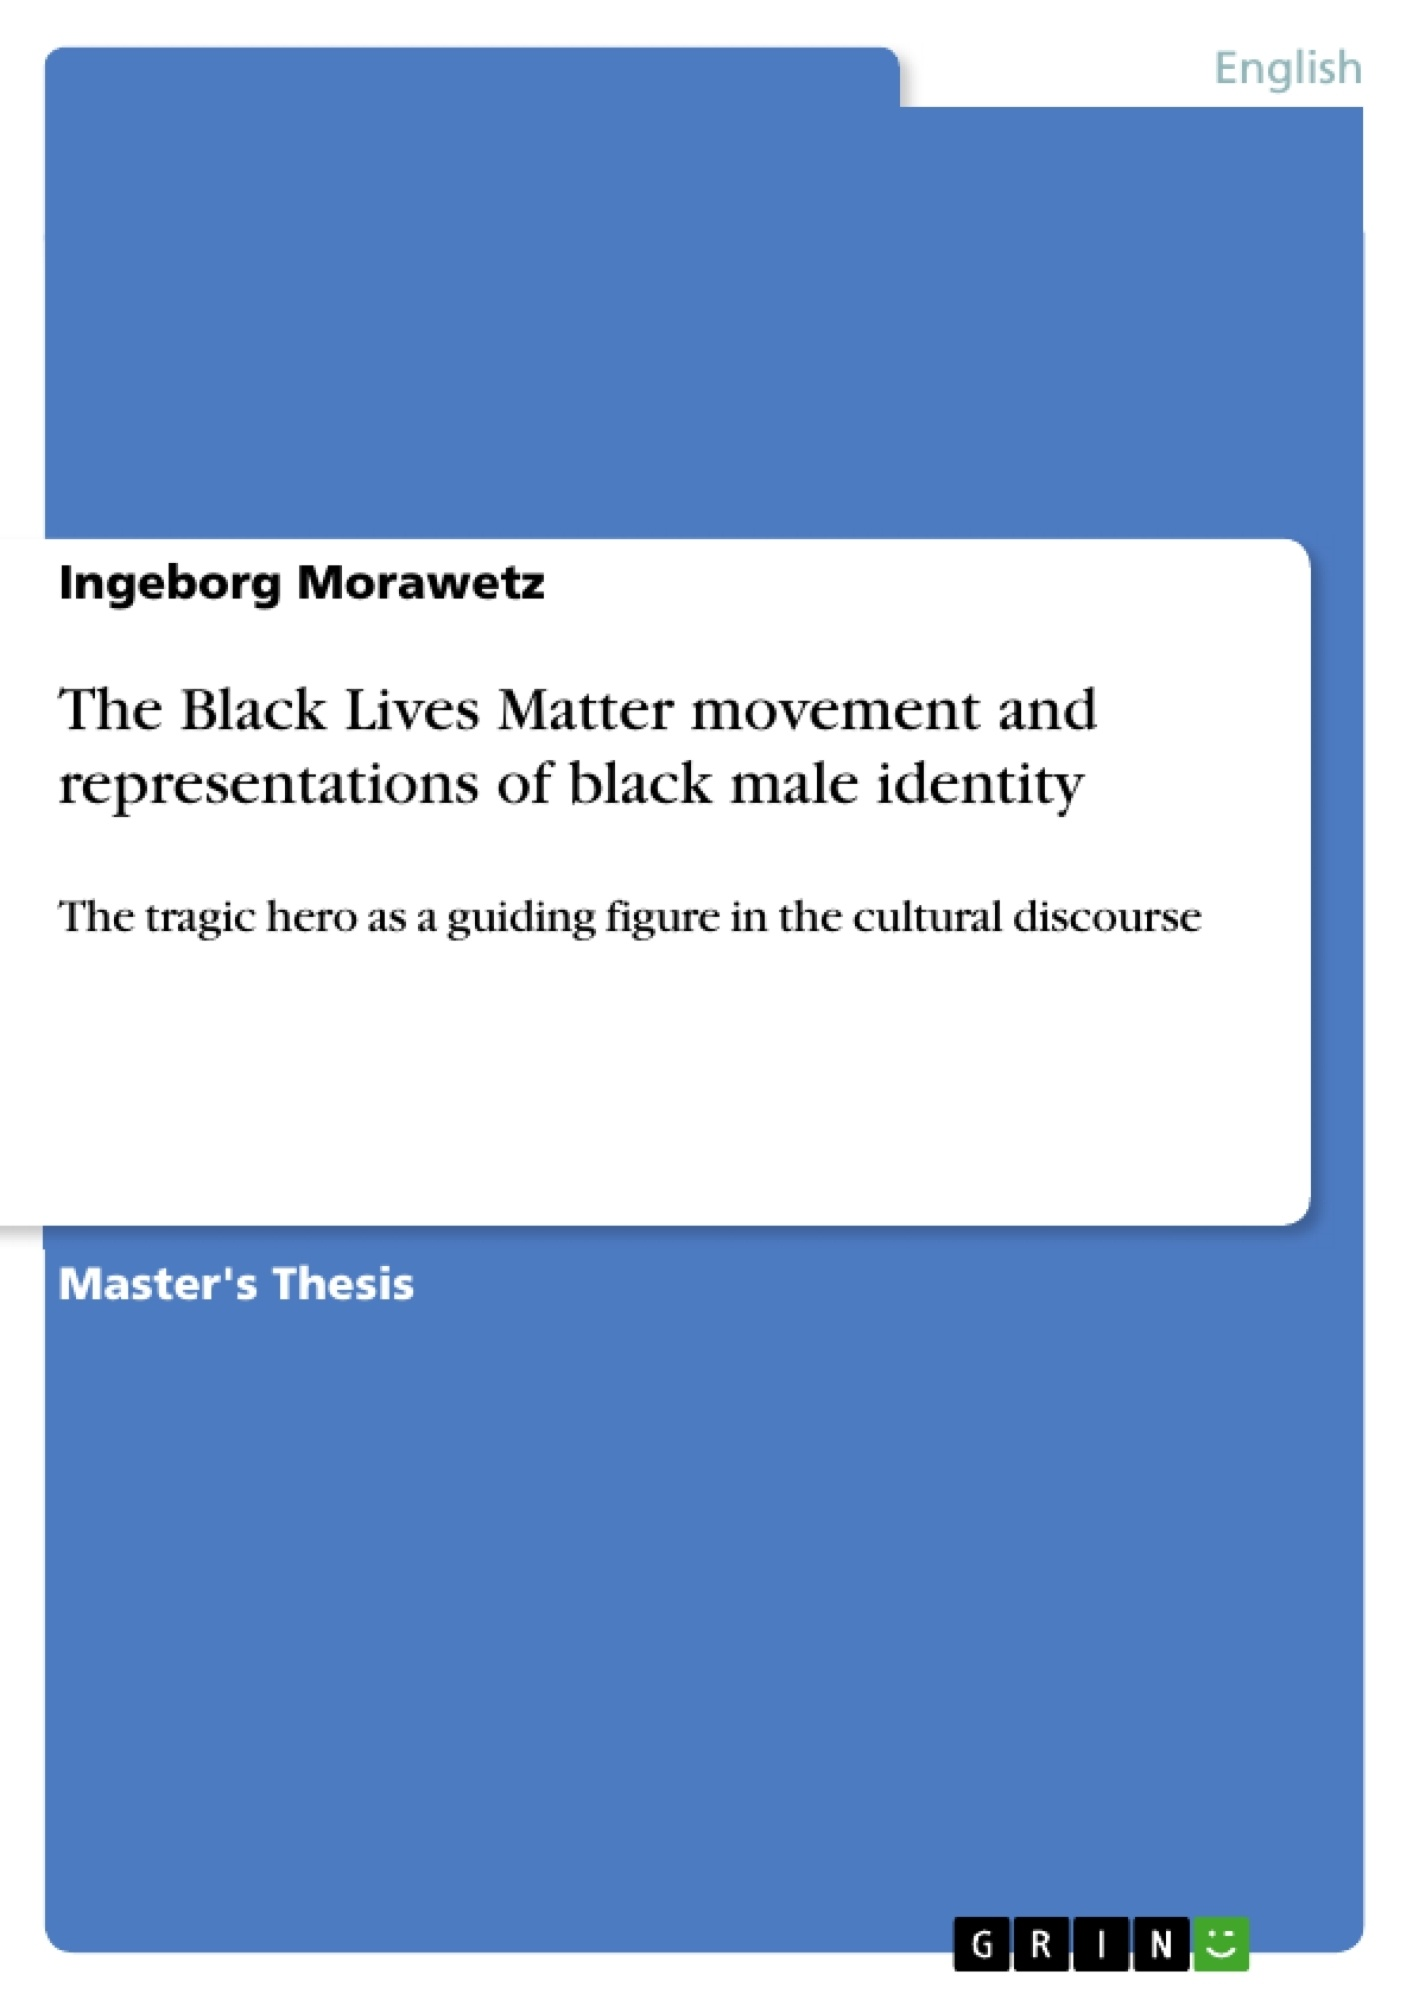 Title: The Black Lives Matter movement and representations of black male identity